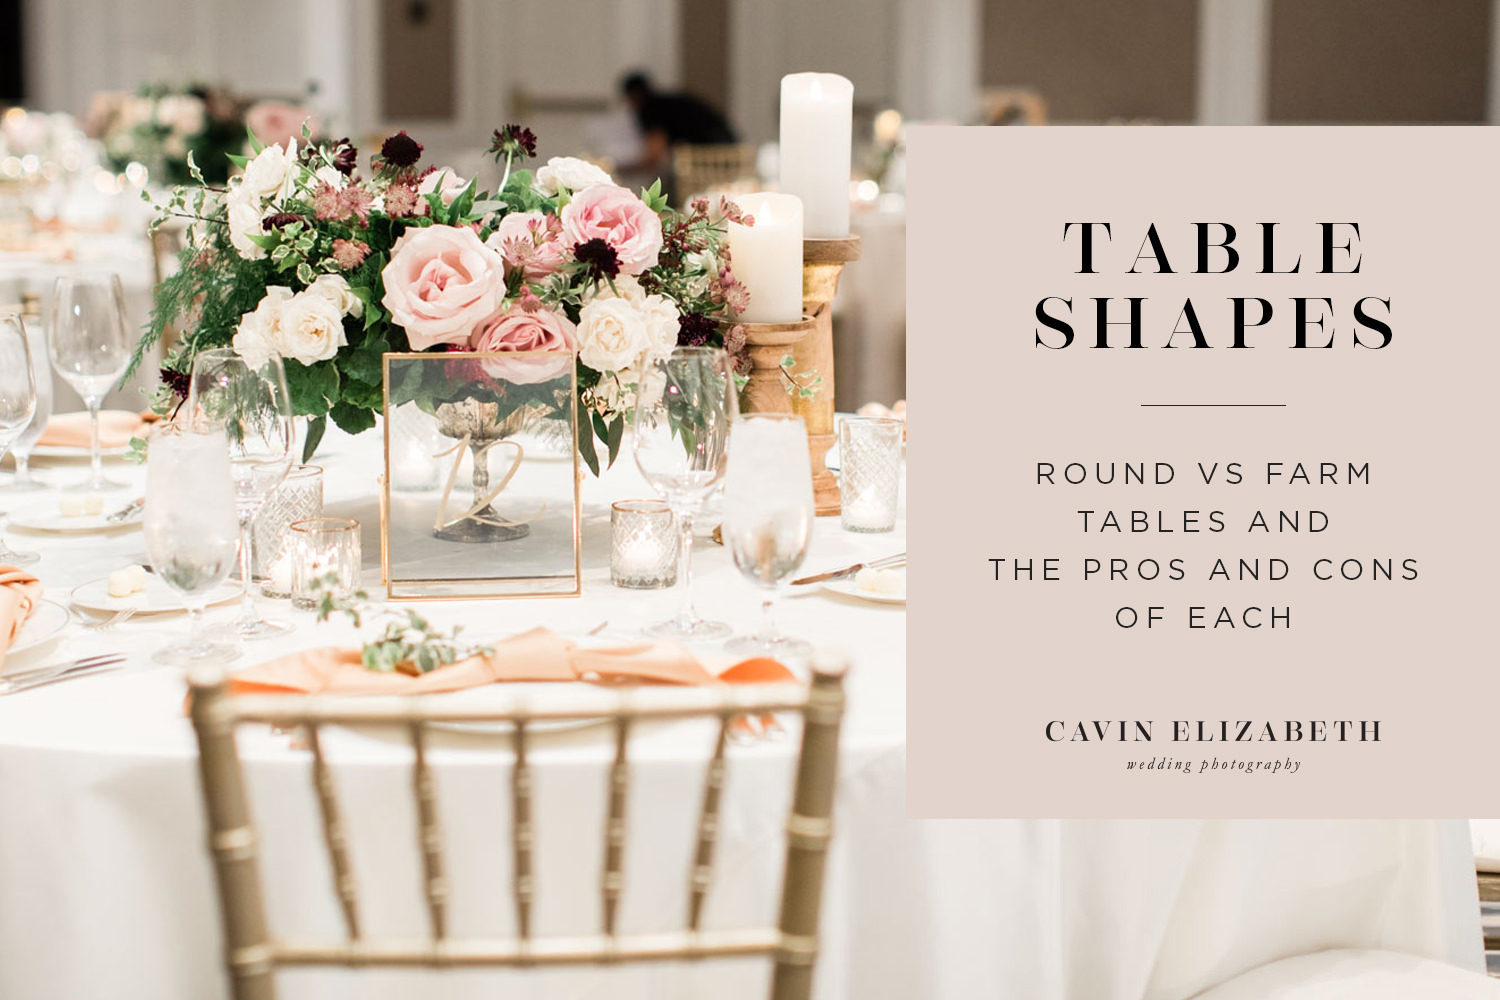 Make And Take Room In A Box Elizabeth Farm: Wedding Reception Table Shapes Round Rectangle